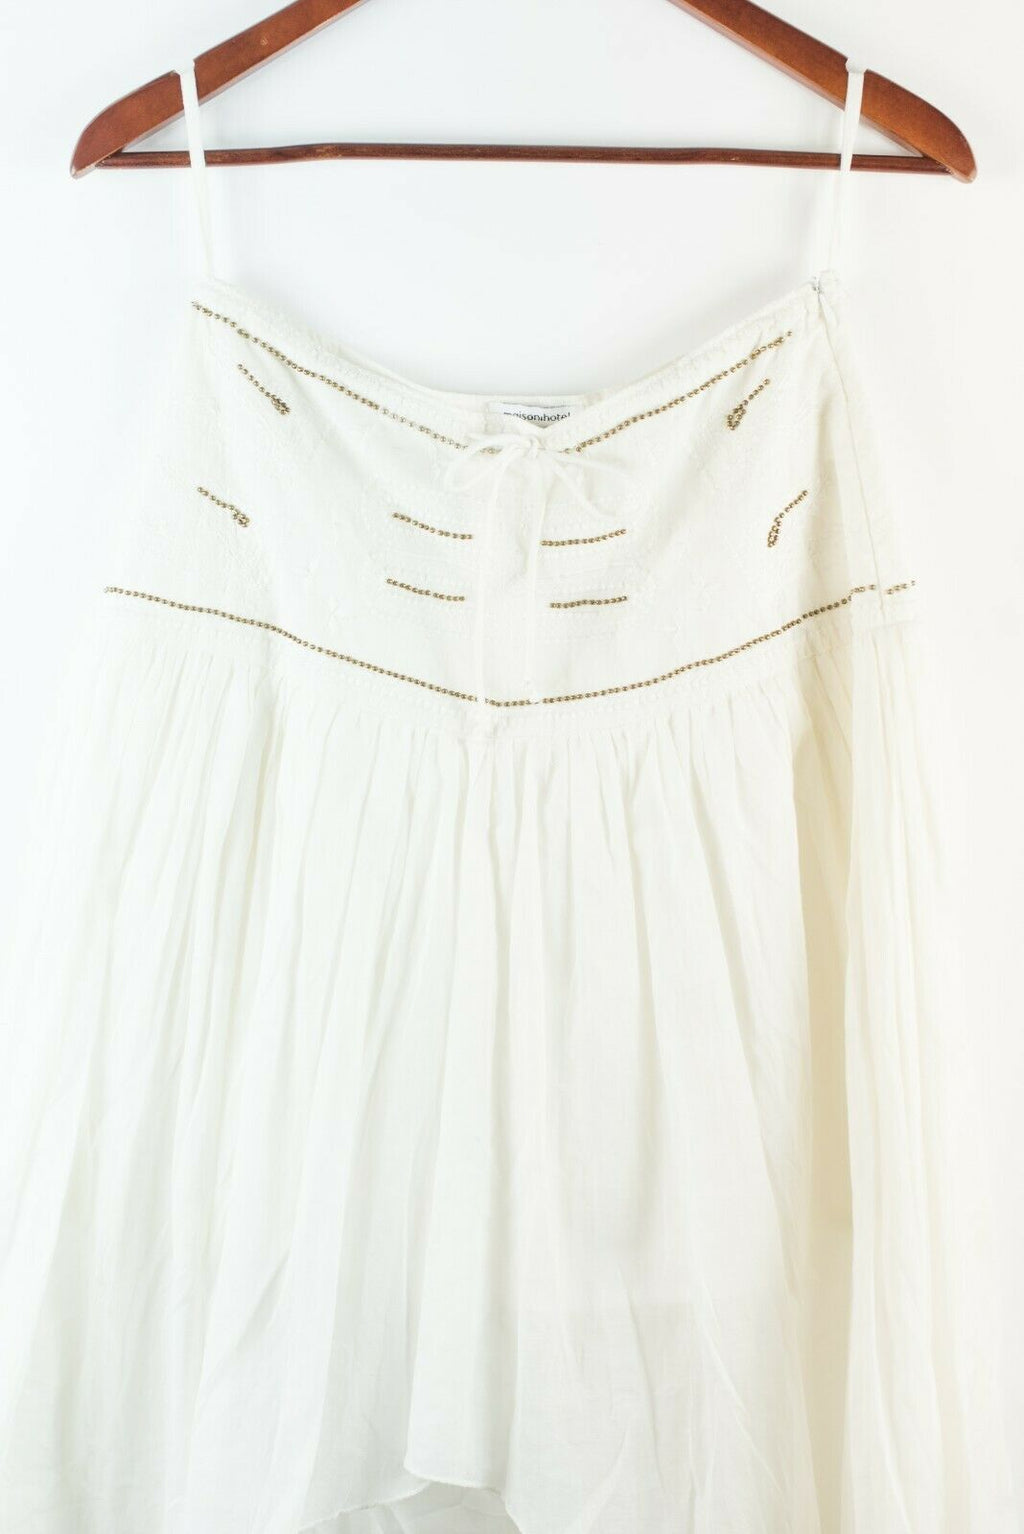 Maison Hotel Womens Size Small White Skirt High Low Beaded Bohemian Cotton Midi